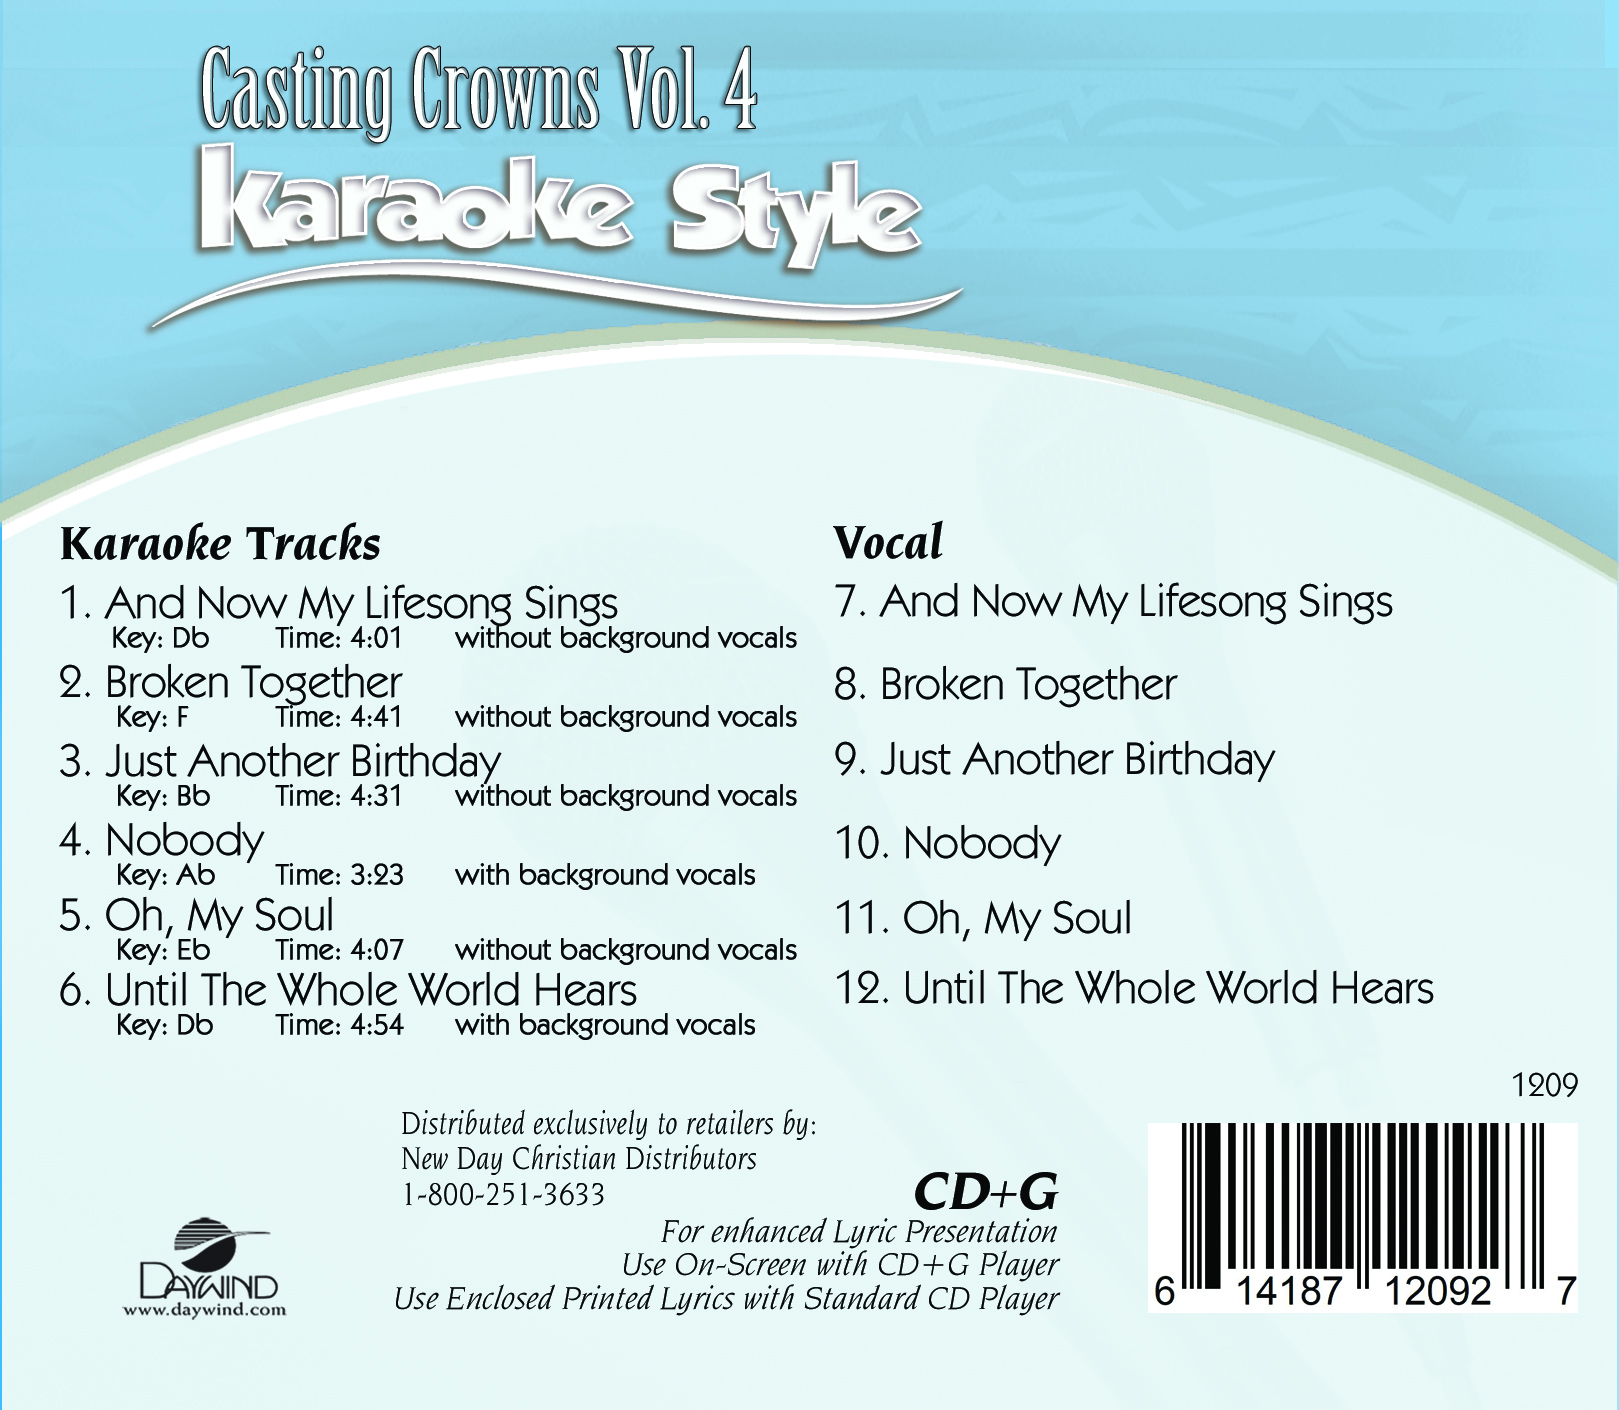 Karaoke Style Casting Crowns Vol 4 Casting Crowns Karaoke Daywind Com Stay tuned nobody by casting crowns, make sure you hit the post notifications! karaoke style casting crowns vol 4